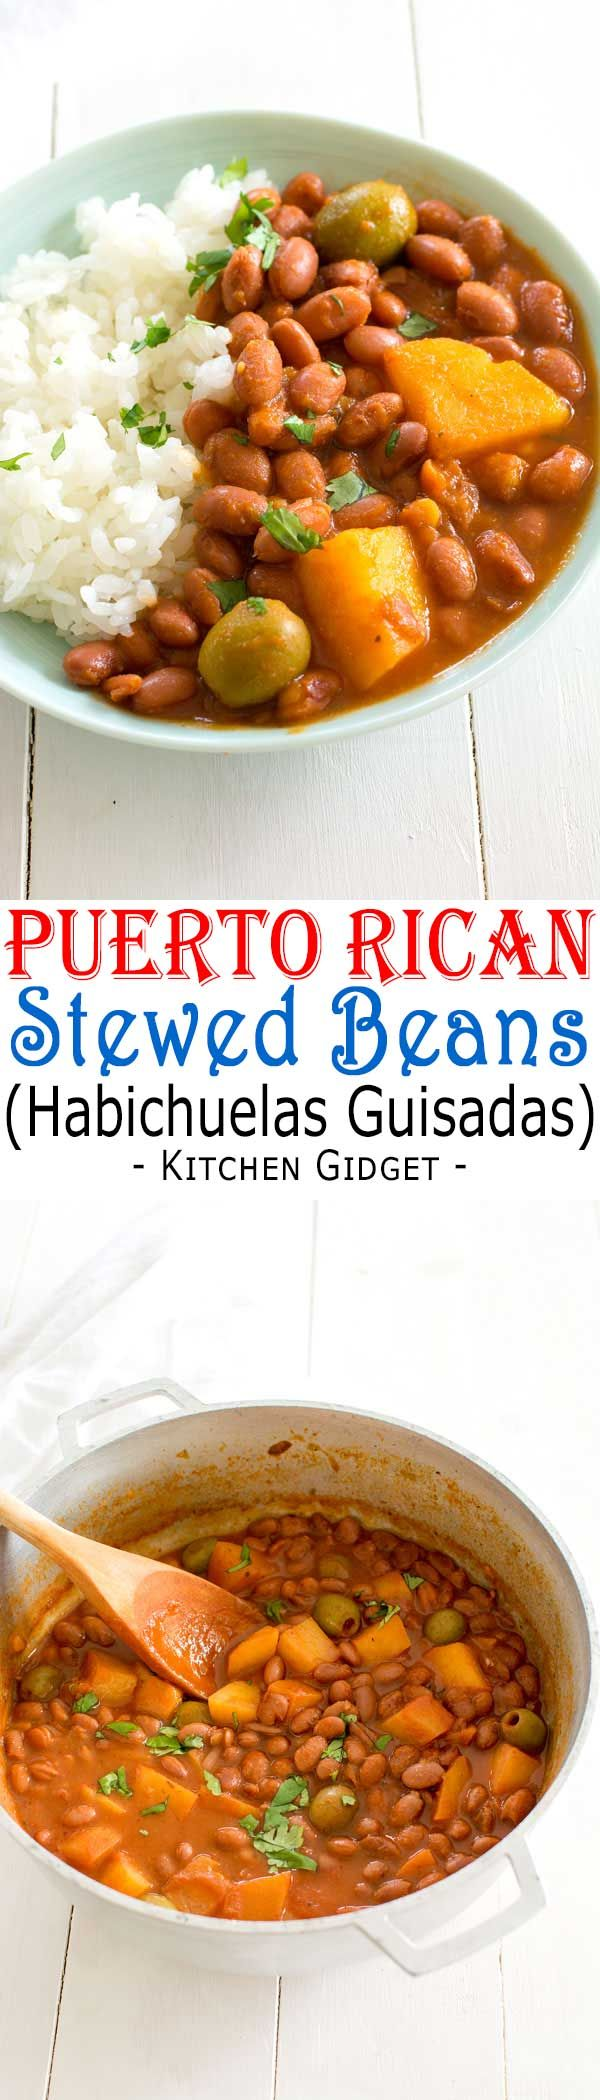 Puerto Rican Rice and Beans (Habichuelas Guisadas) | Easy recipe for authentic Puerto Rican style red beans and white rice!